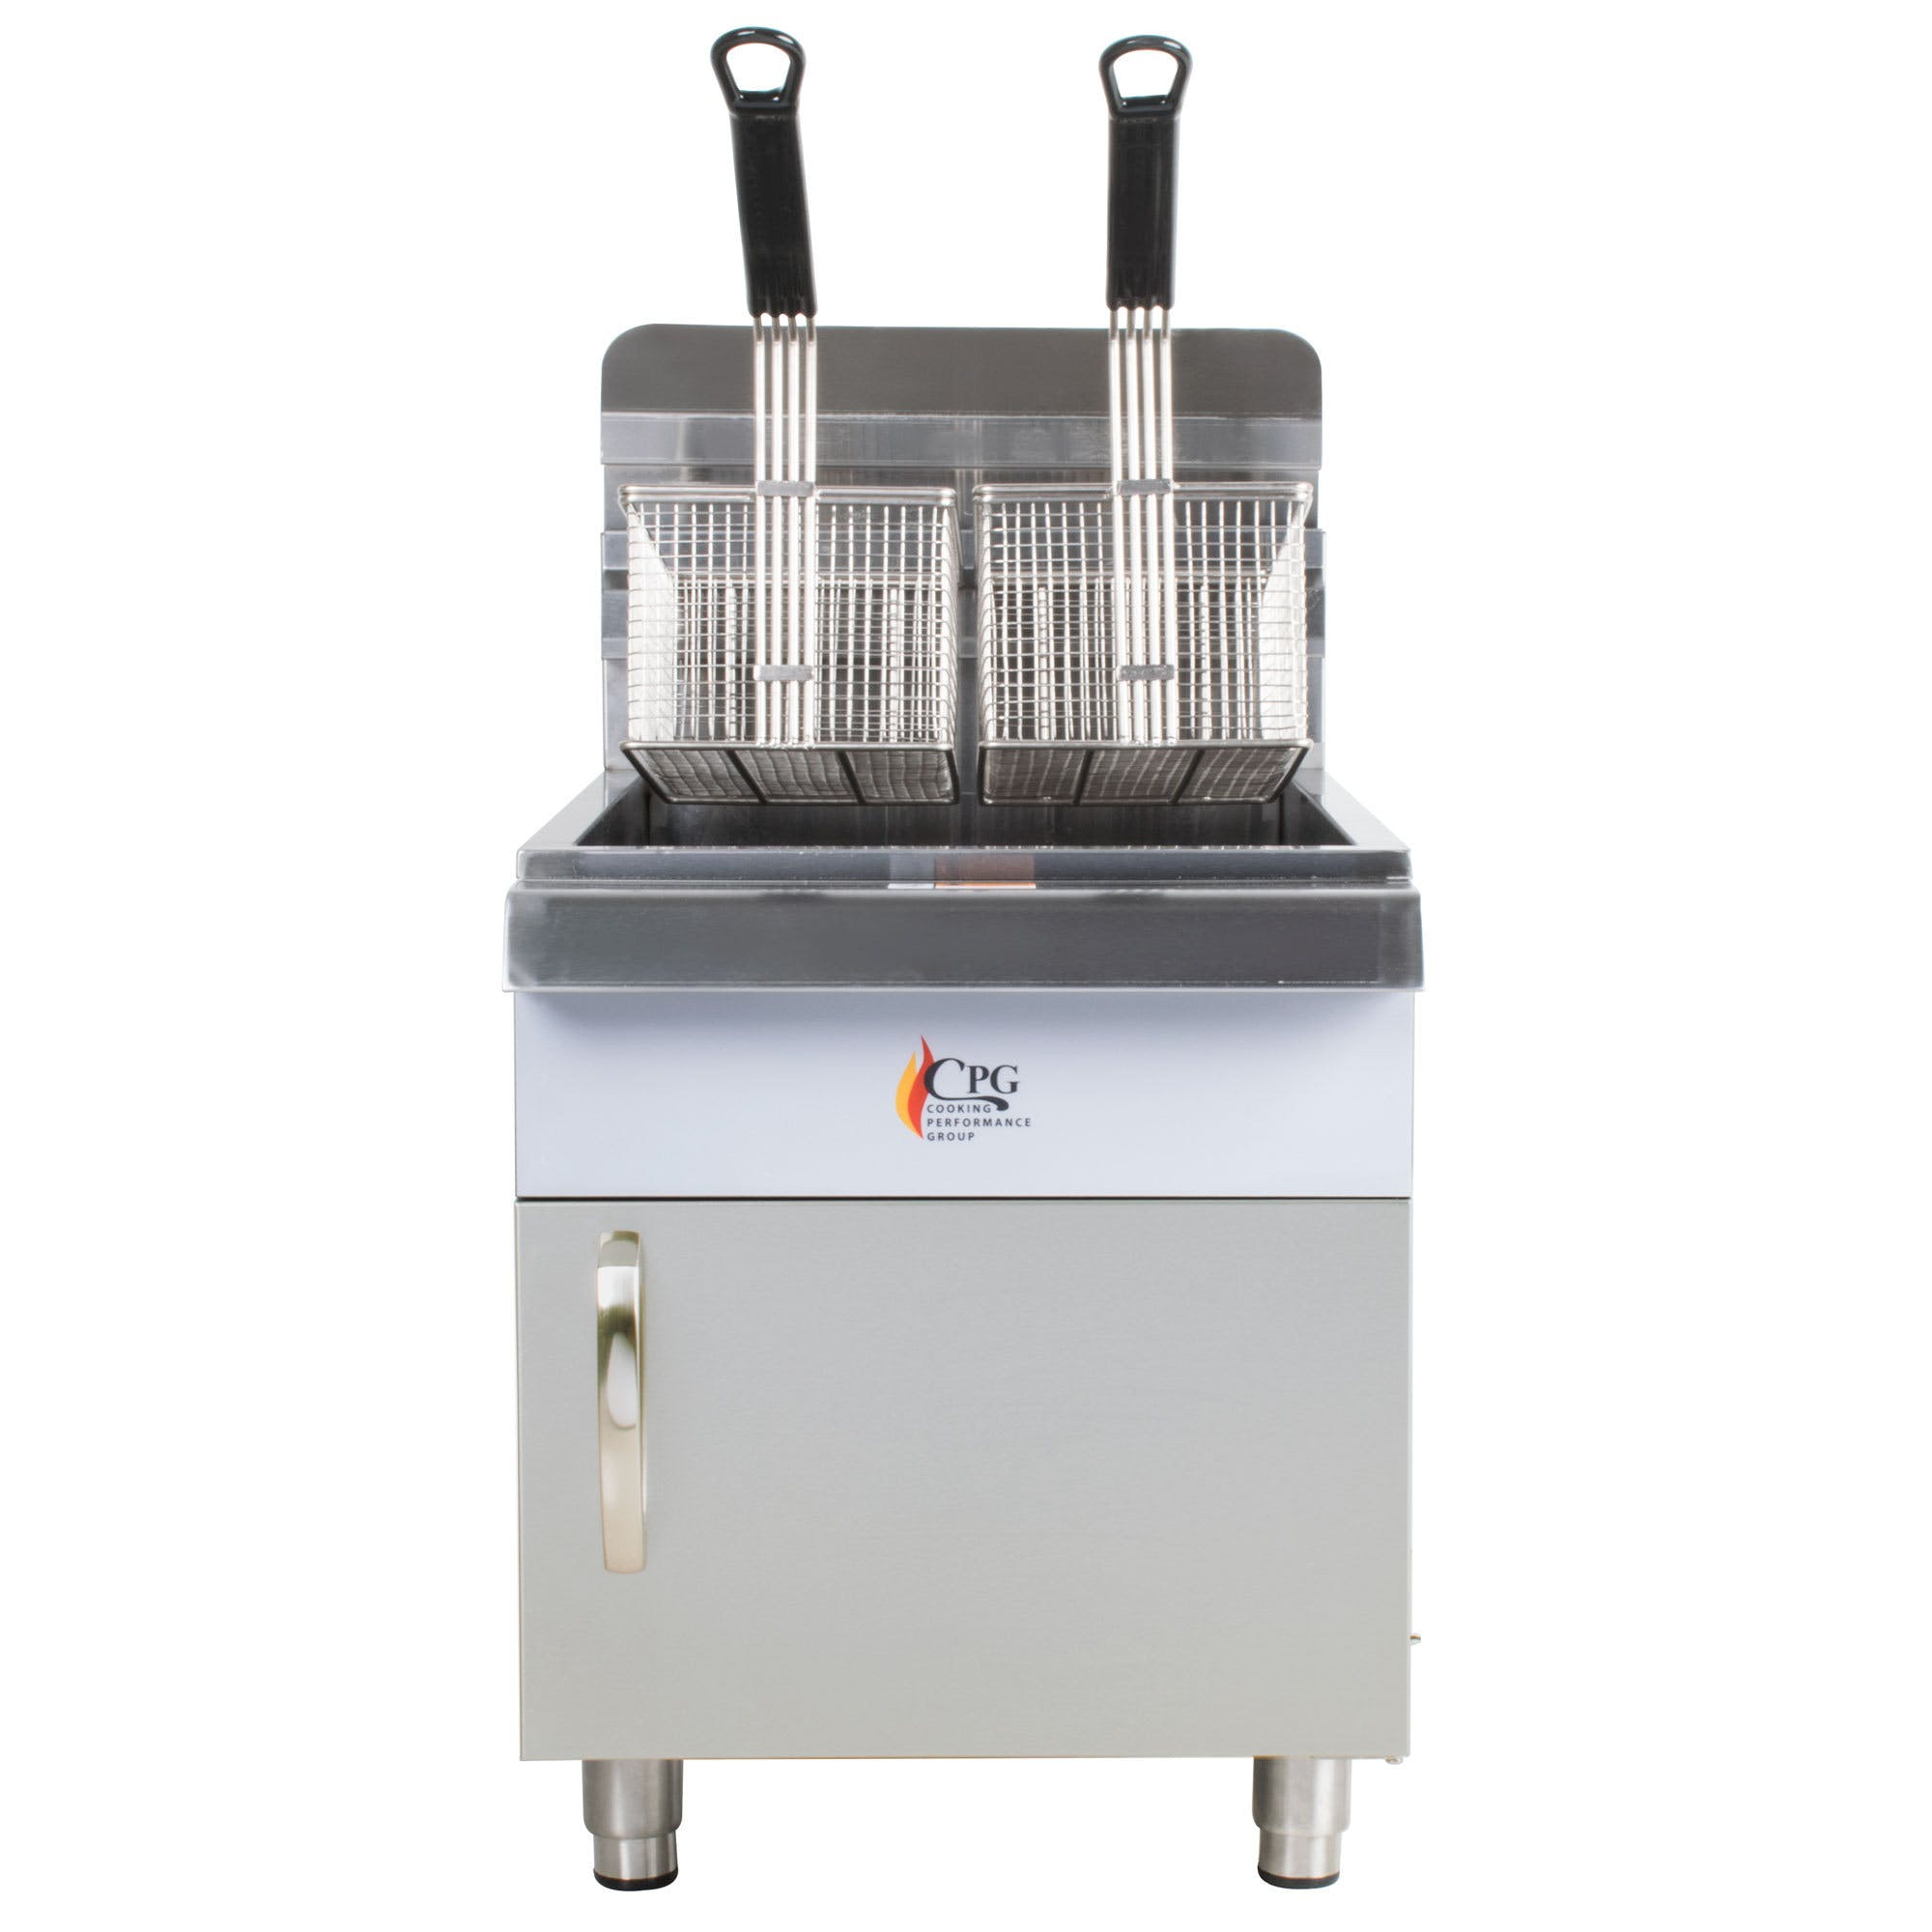 Cooking Performance Group CF30 30 lb. Gas Countertop Fryer - 53,000 BTU Commercial fryer sold by WebstaurantStore